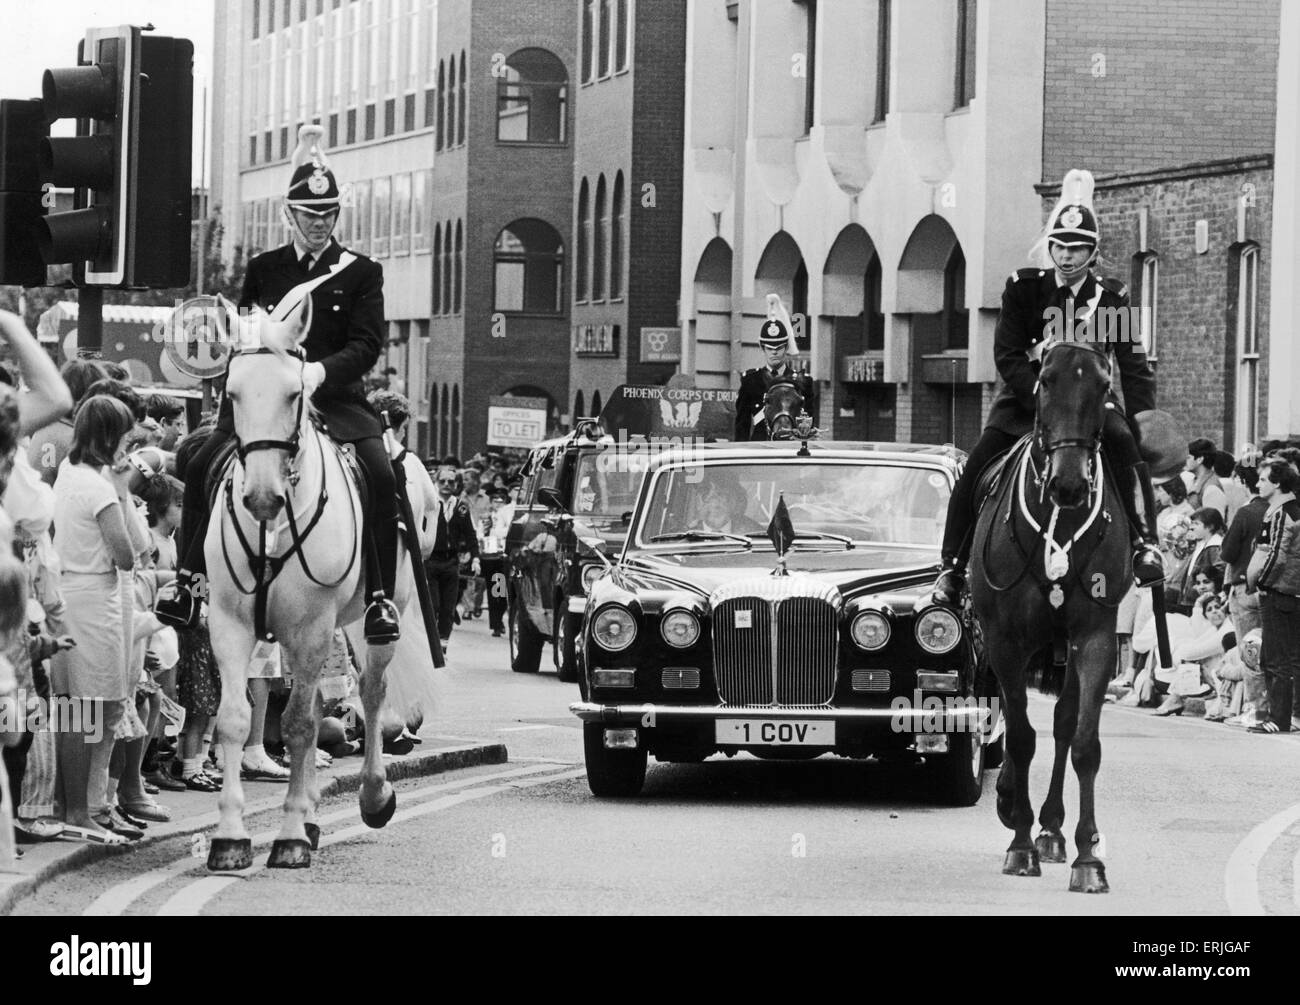 mounted policemen escort the Lord Mayors car at the head of the 1985 Coventry carnival. 15th June 1985 - Stock Image